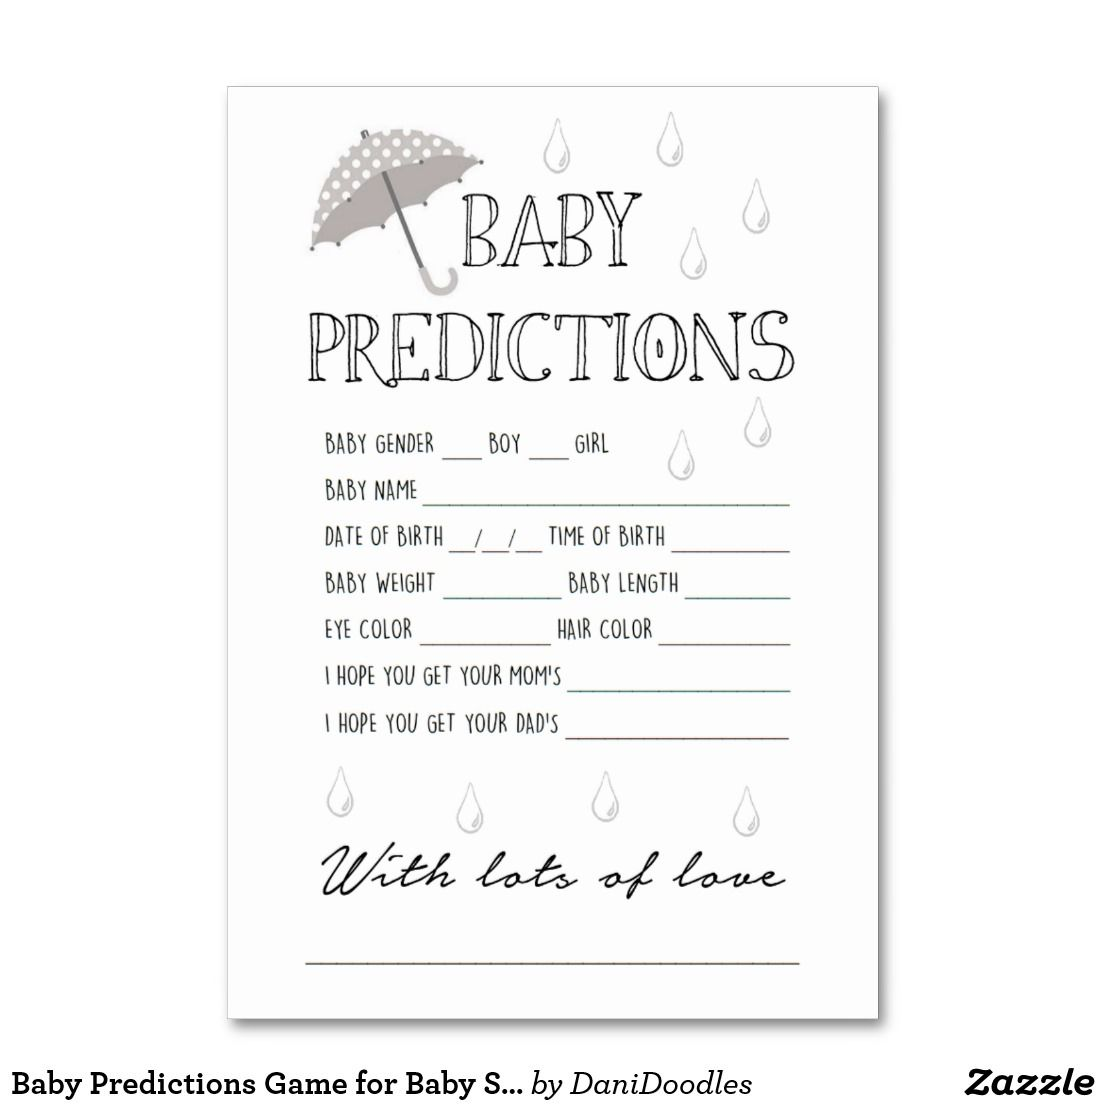 Baby Predictions Game For Baby Shower Table Number Zazzle Com Baby Shower Prediction Cards Virtual Baby Shower Baby Prediction